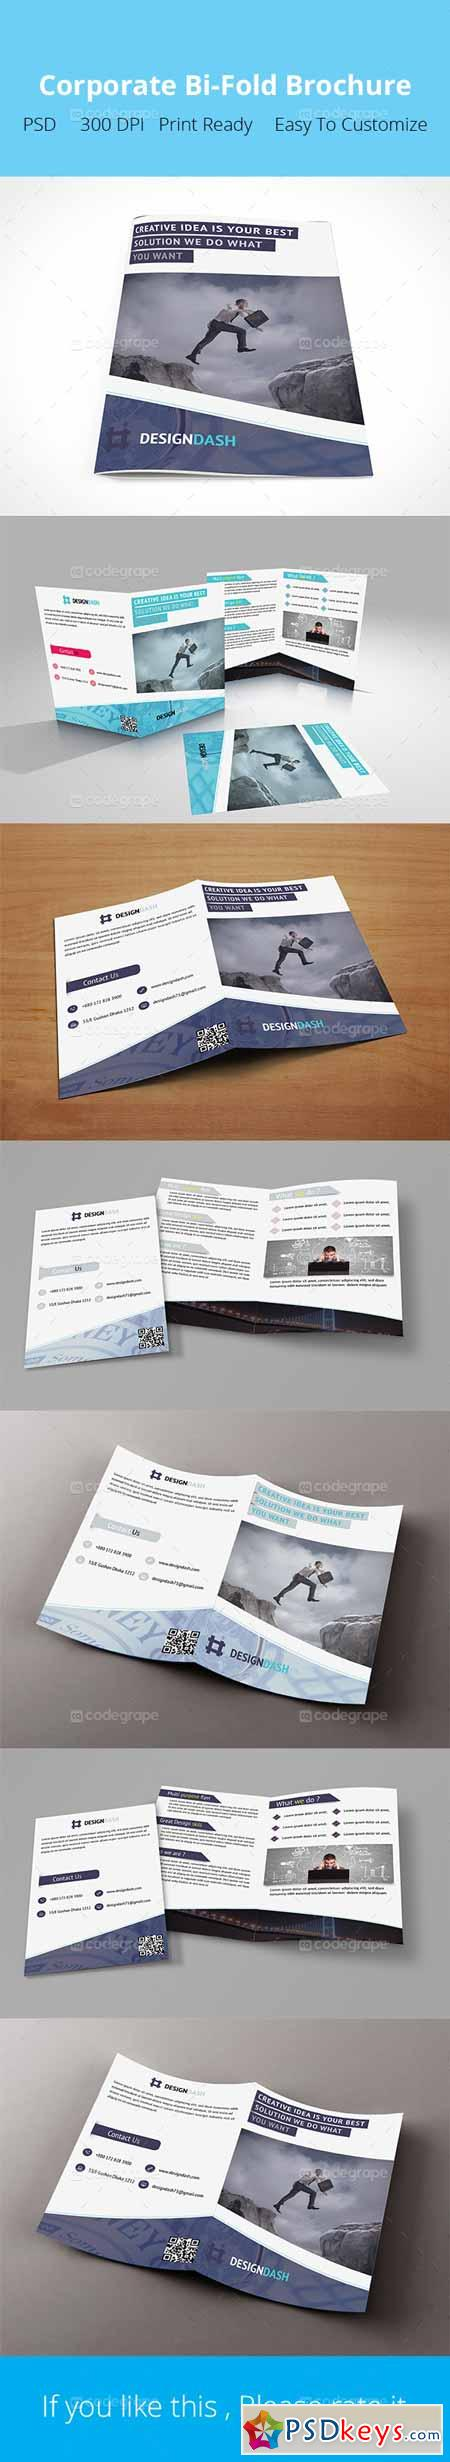 Design Agency Bi-Fold Brochure 5124